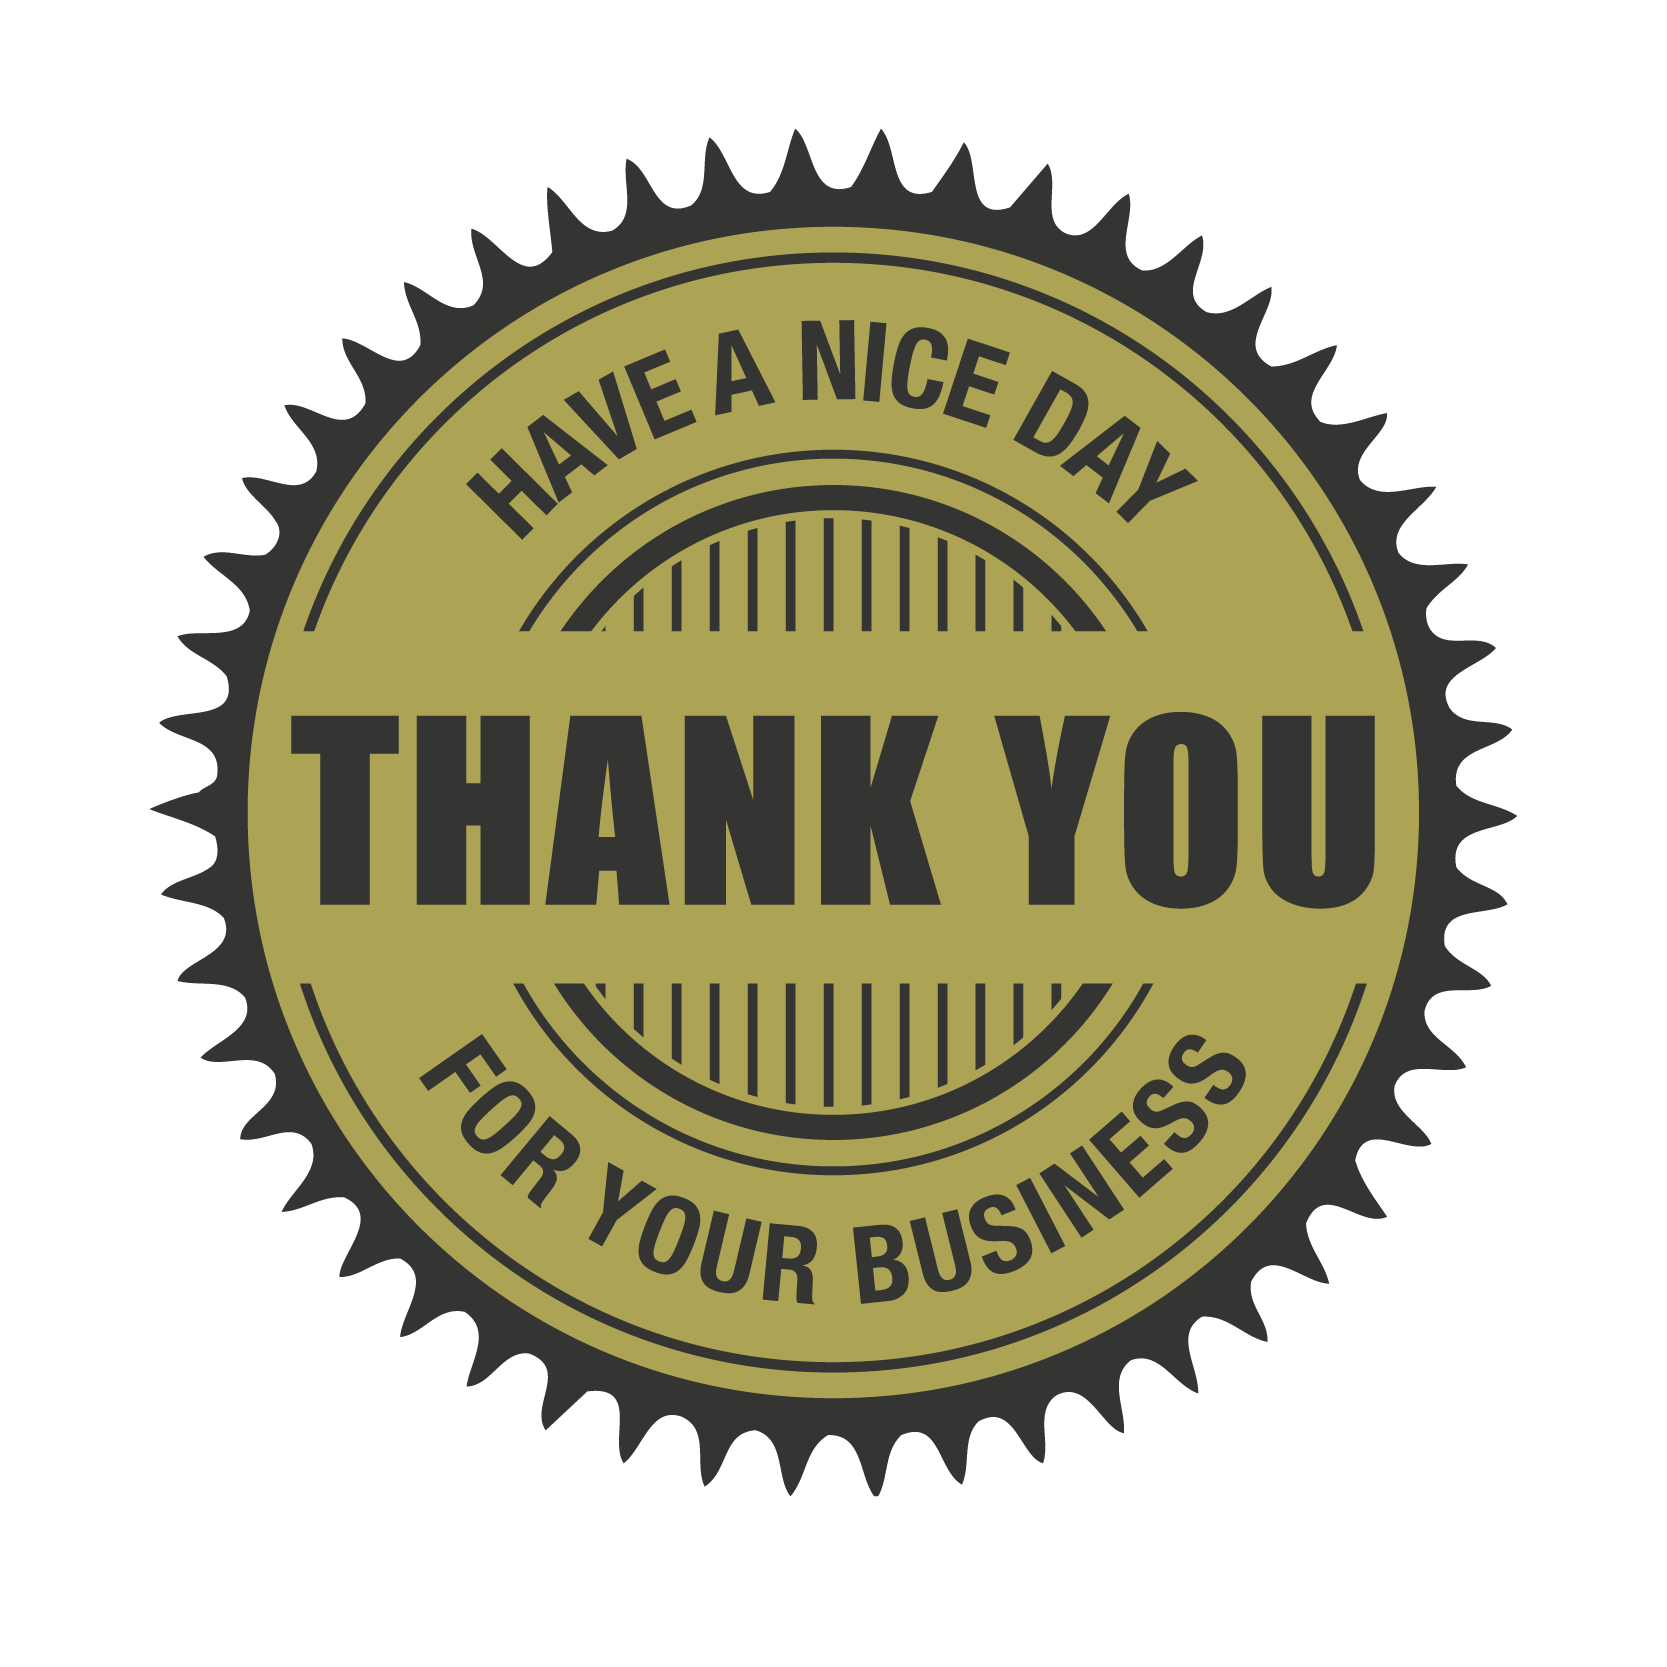 thank you for your business png